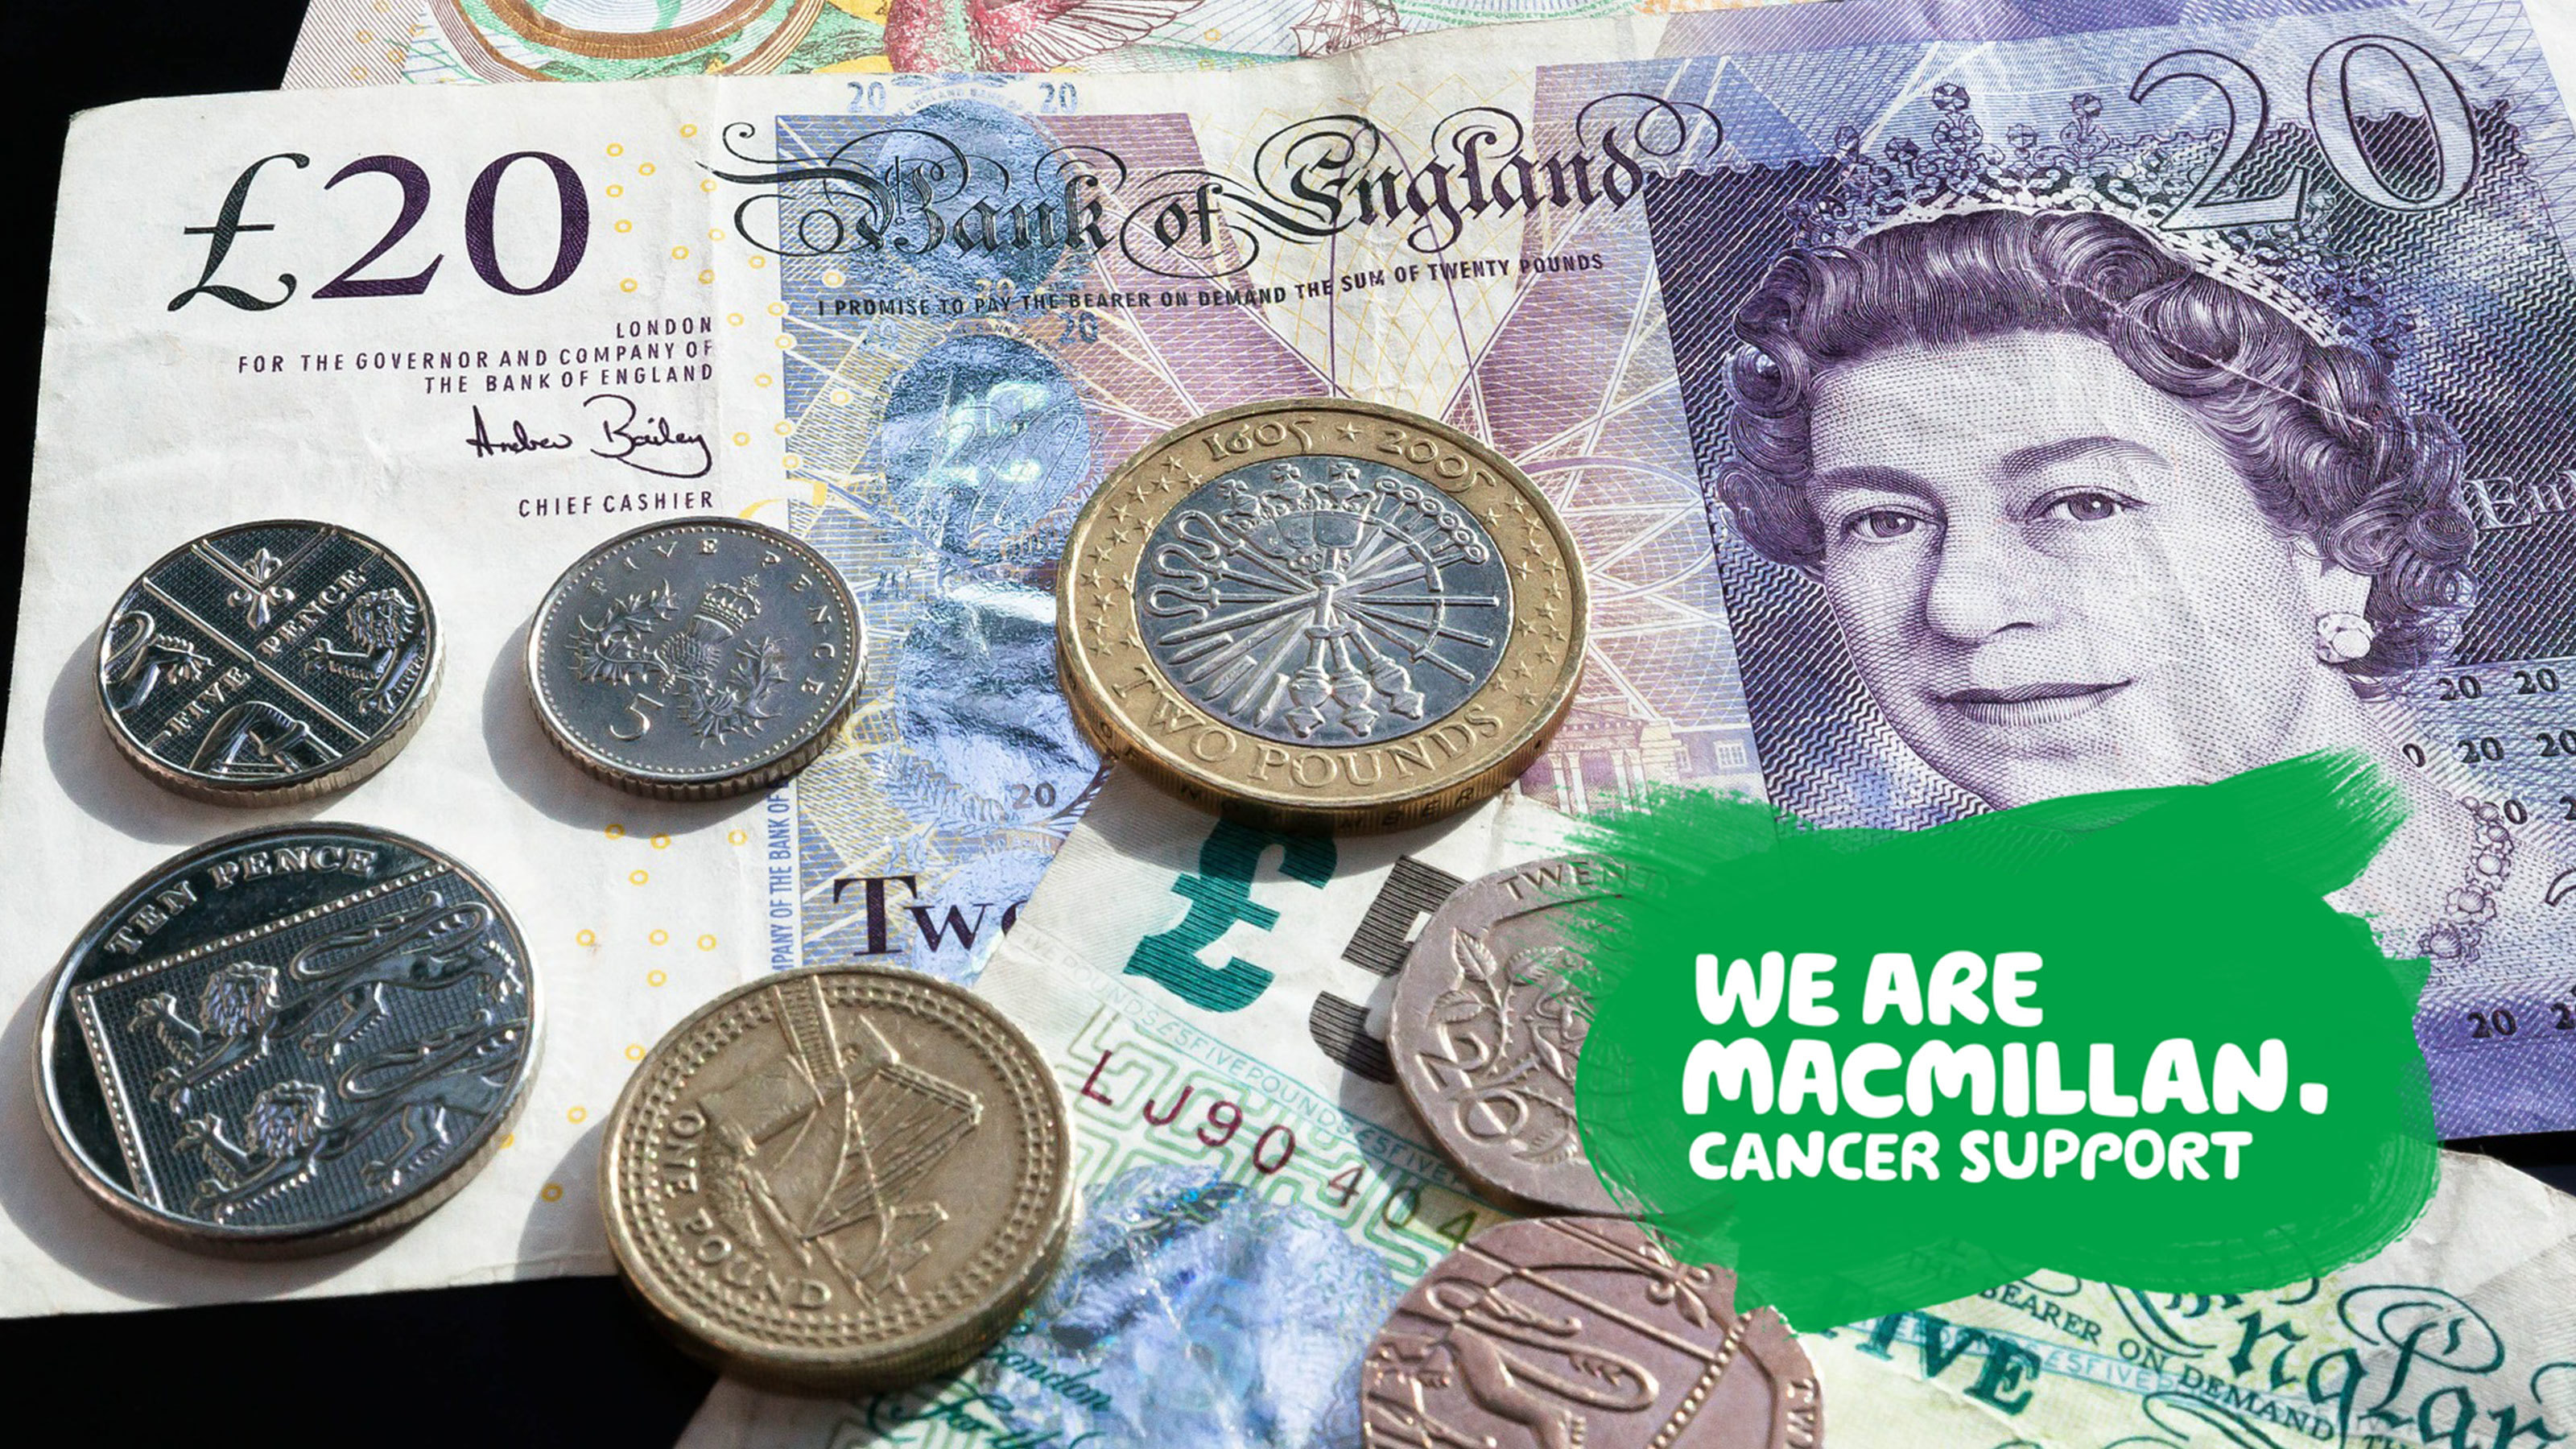 Spare-change-Macmillan-cancer-support